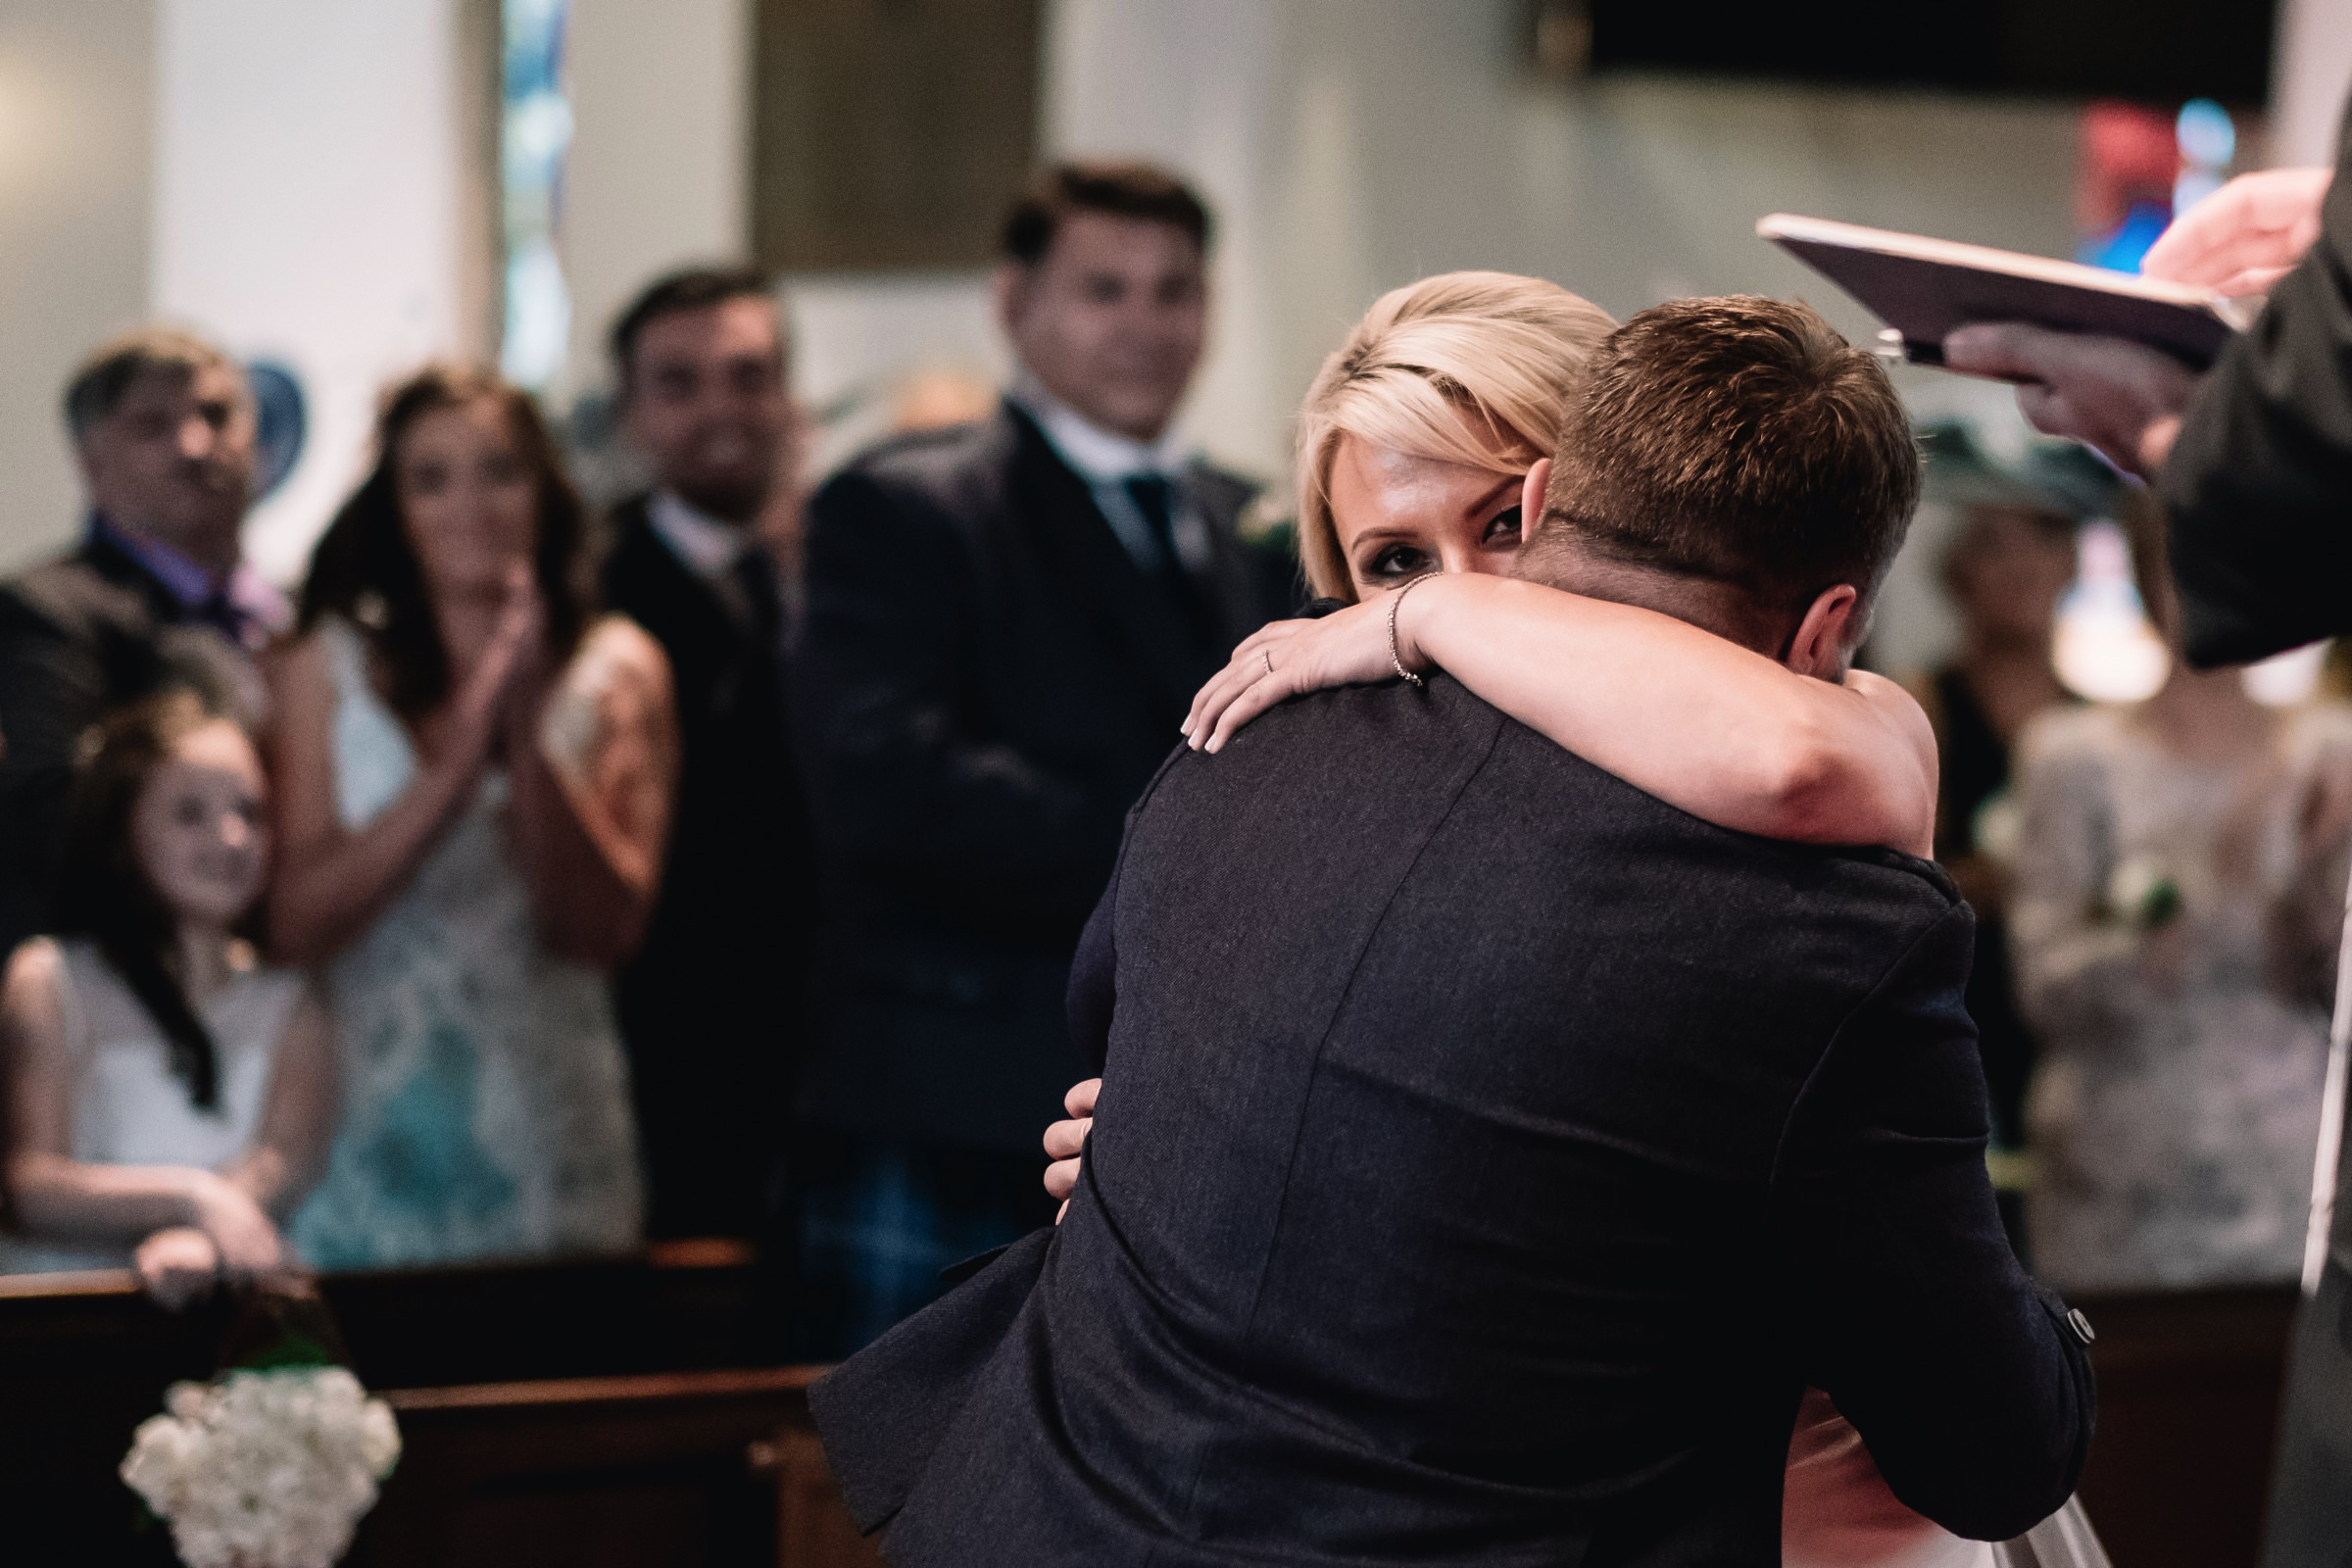 First hug as married couple